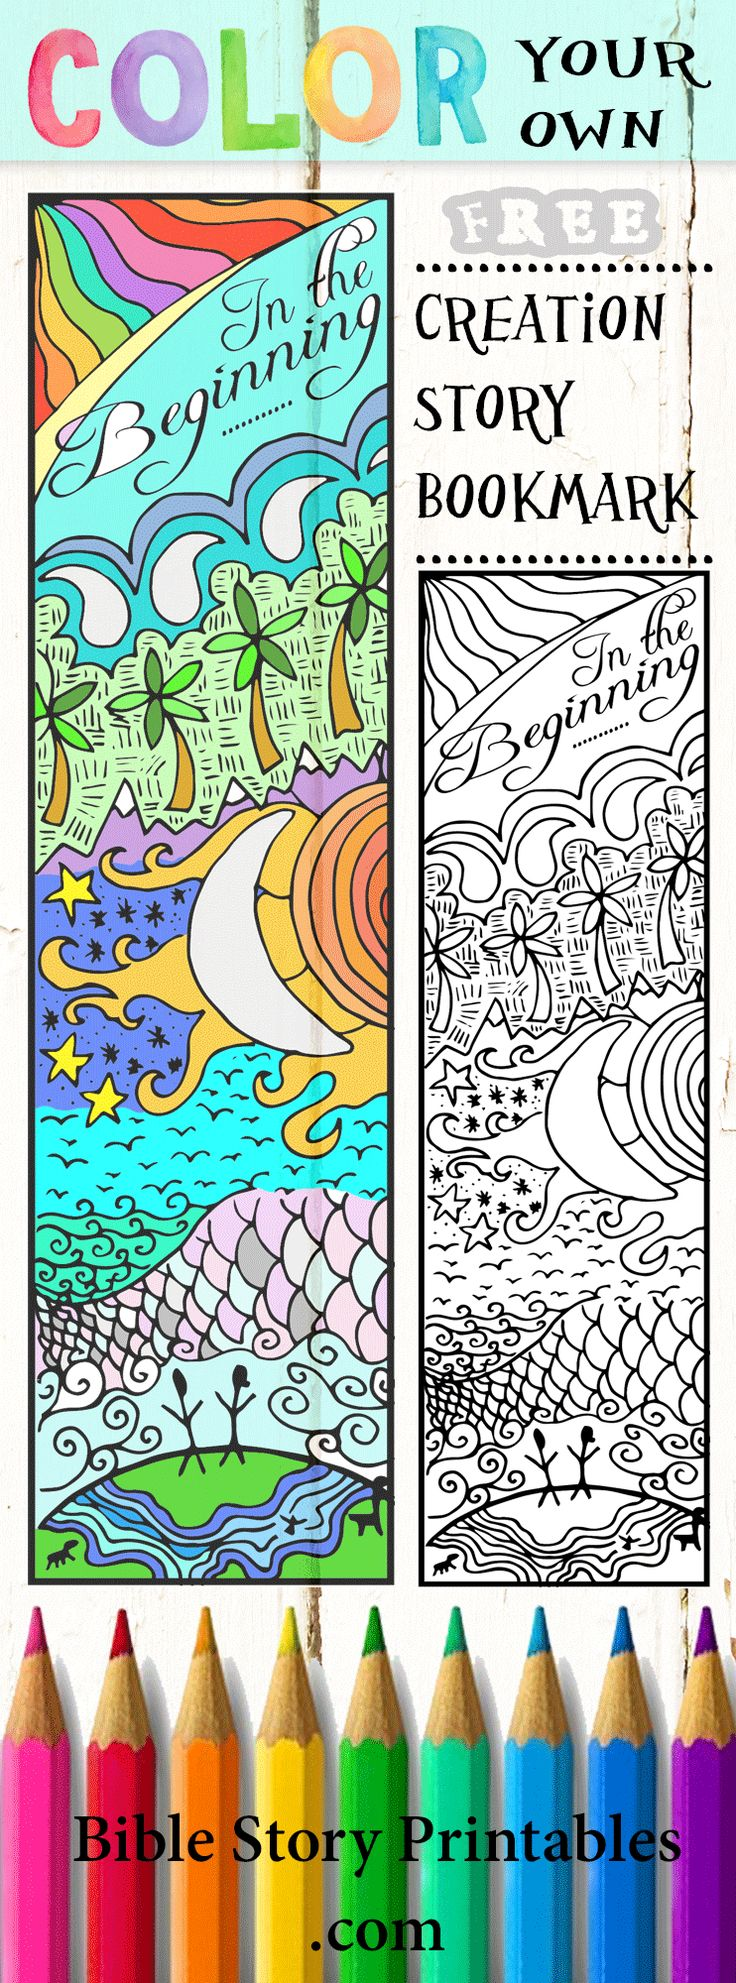 Craft for creation story - Color Your Own Creation Story Bible Bookmarks Http Thecraftyclassroom Com